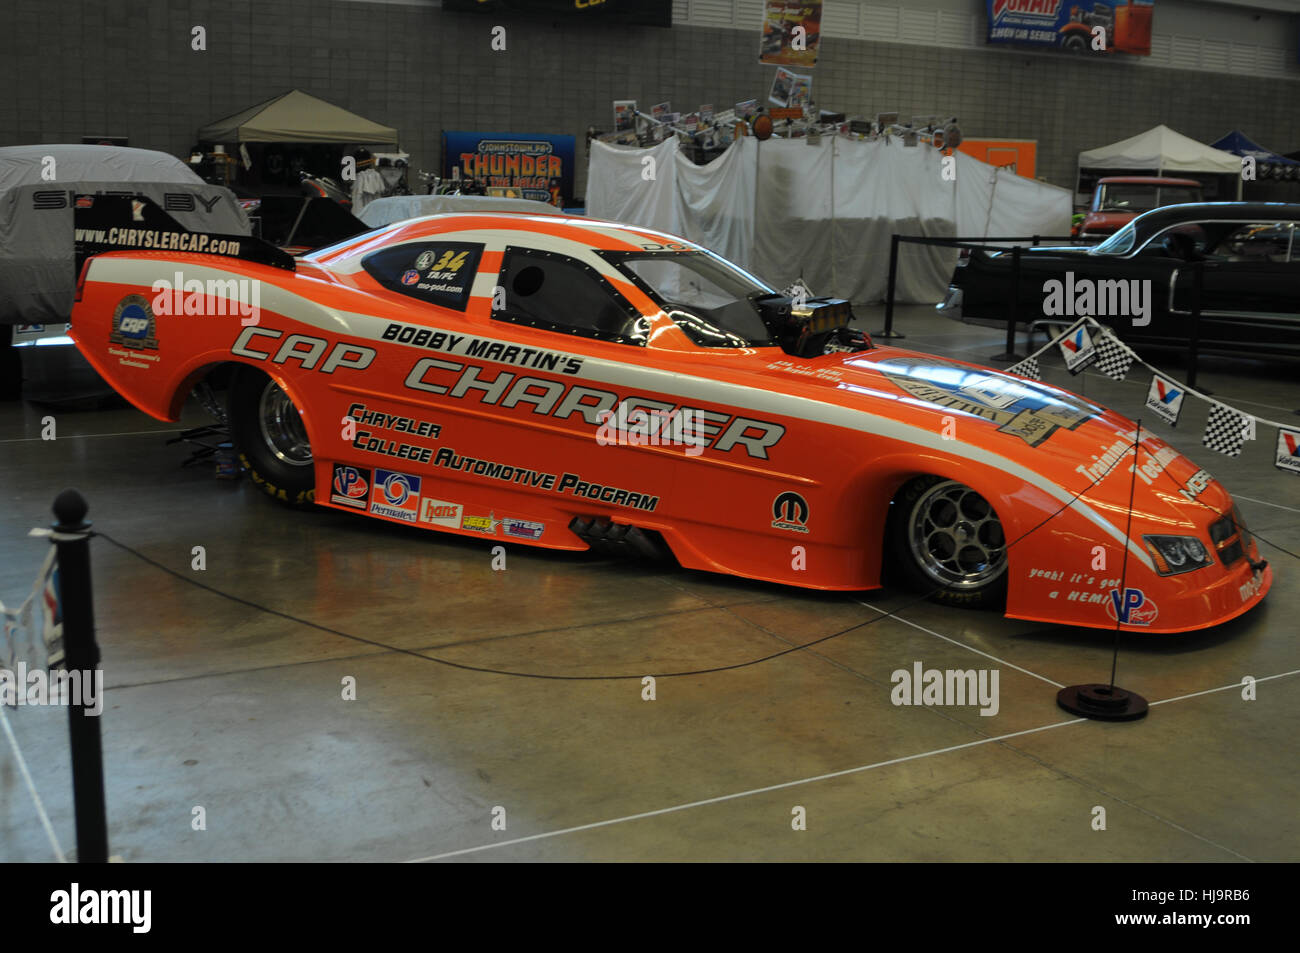 Nhra High Resolution Stock Photography And Images Alamy